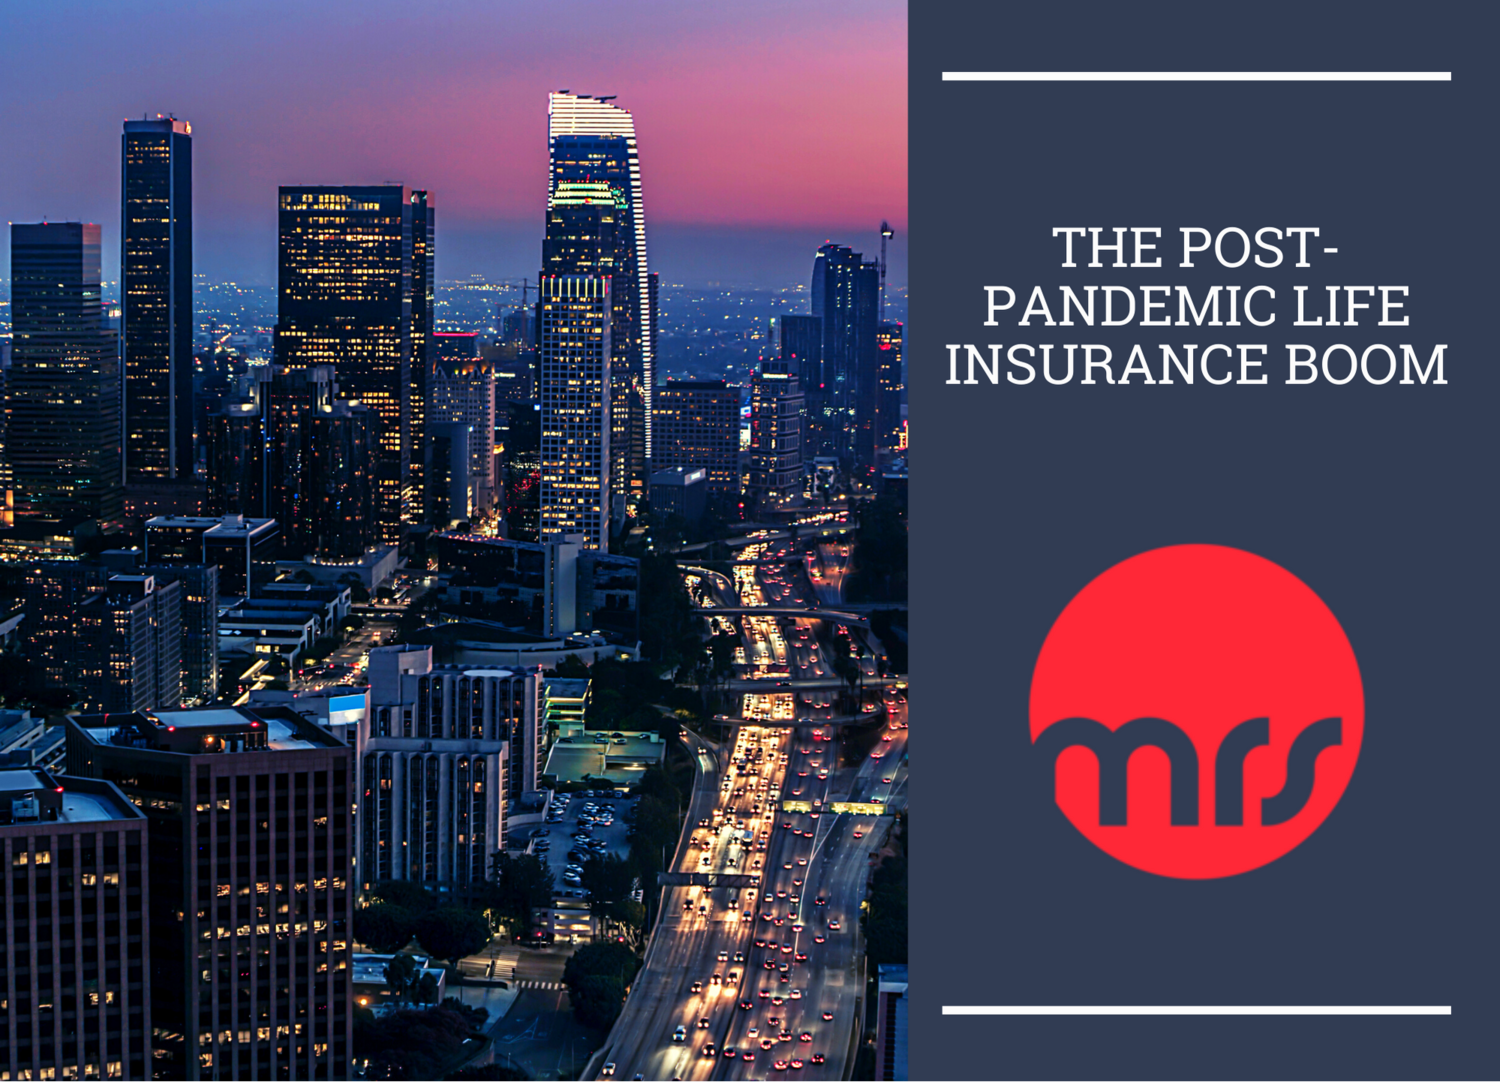 The Post-Pandemic Life Insurance Boom